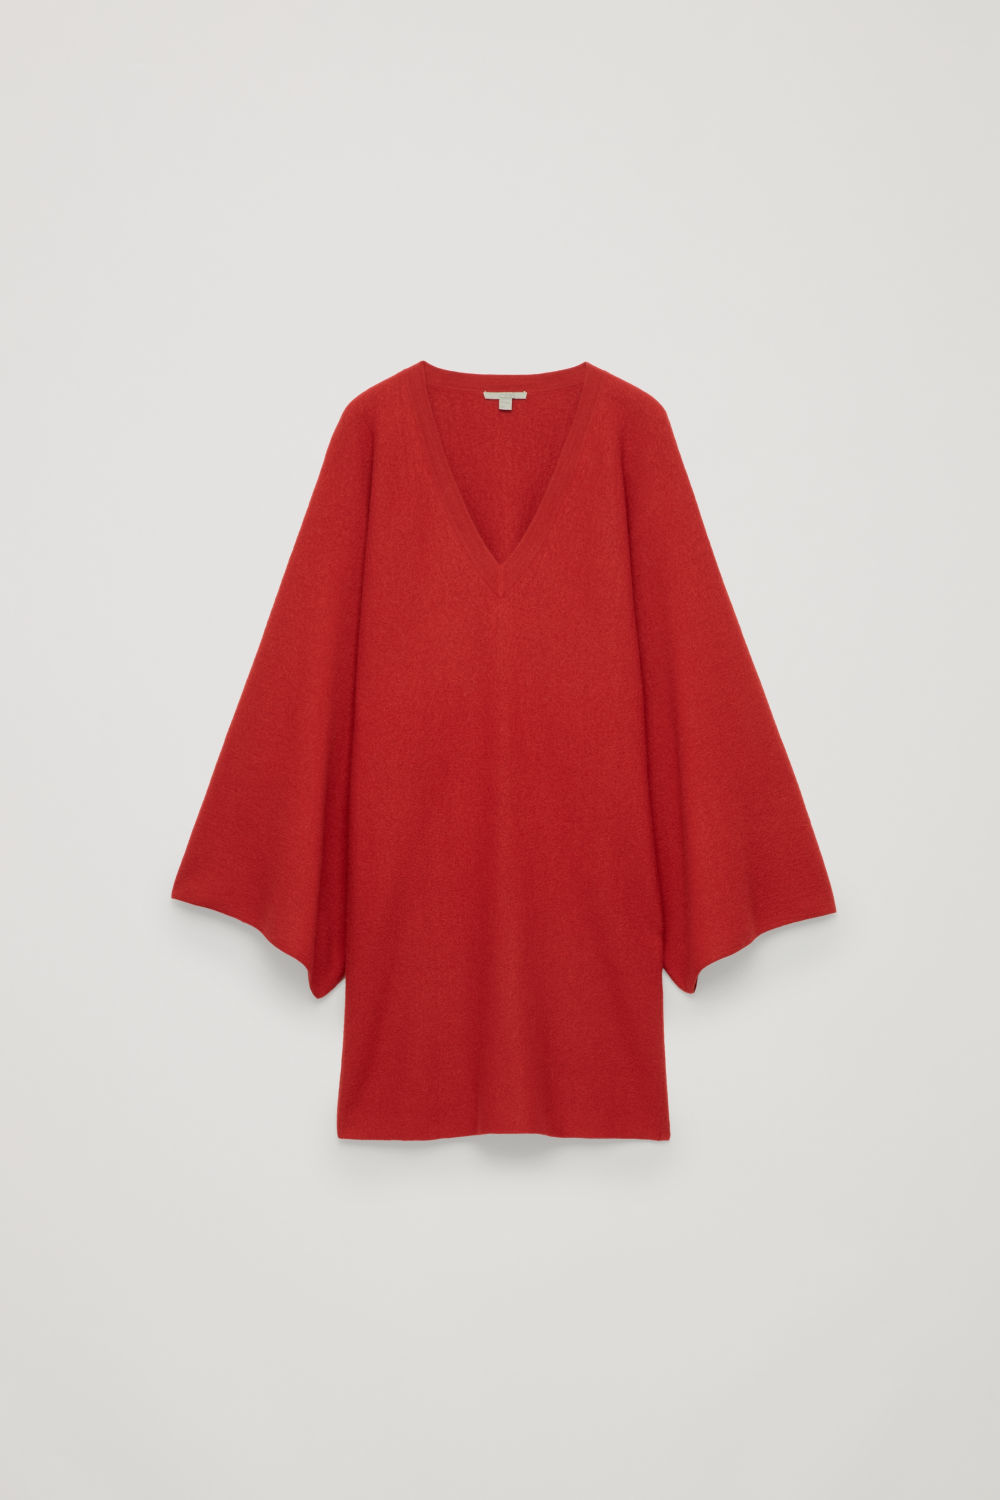 CAPE-SLEEVED WOOL KNIT DRESS